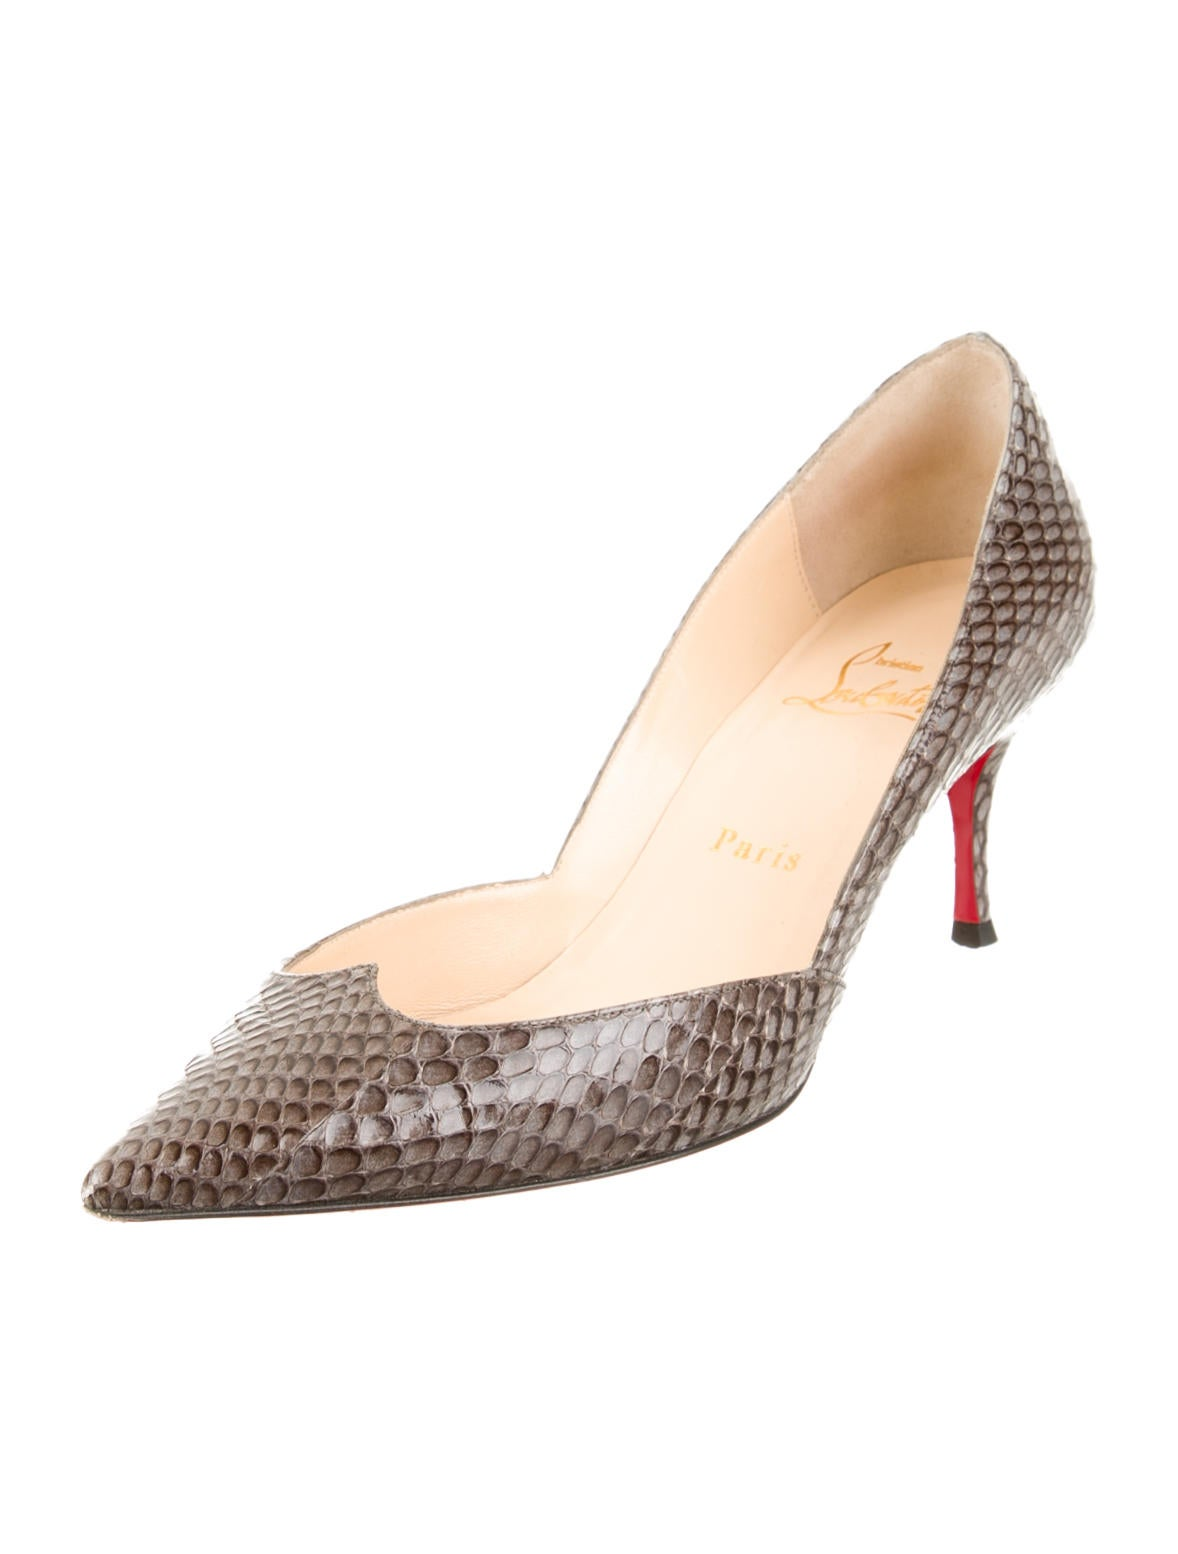 christian louboutin cobra pumps